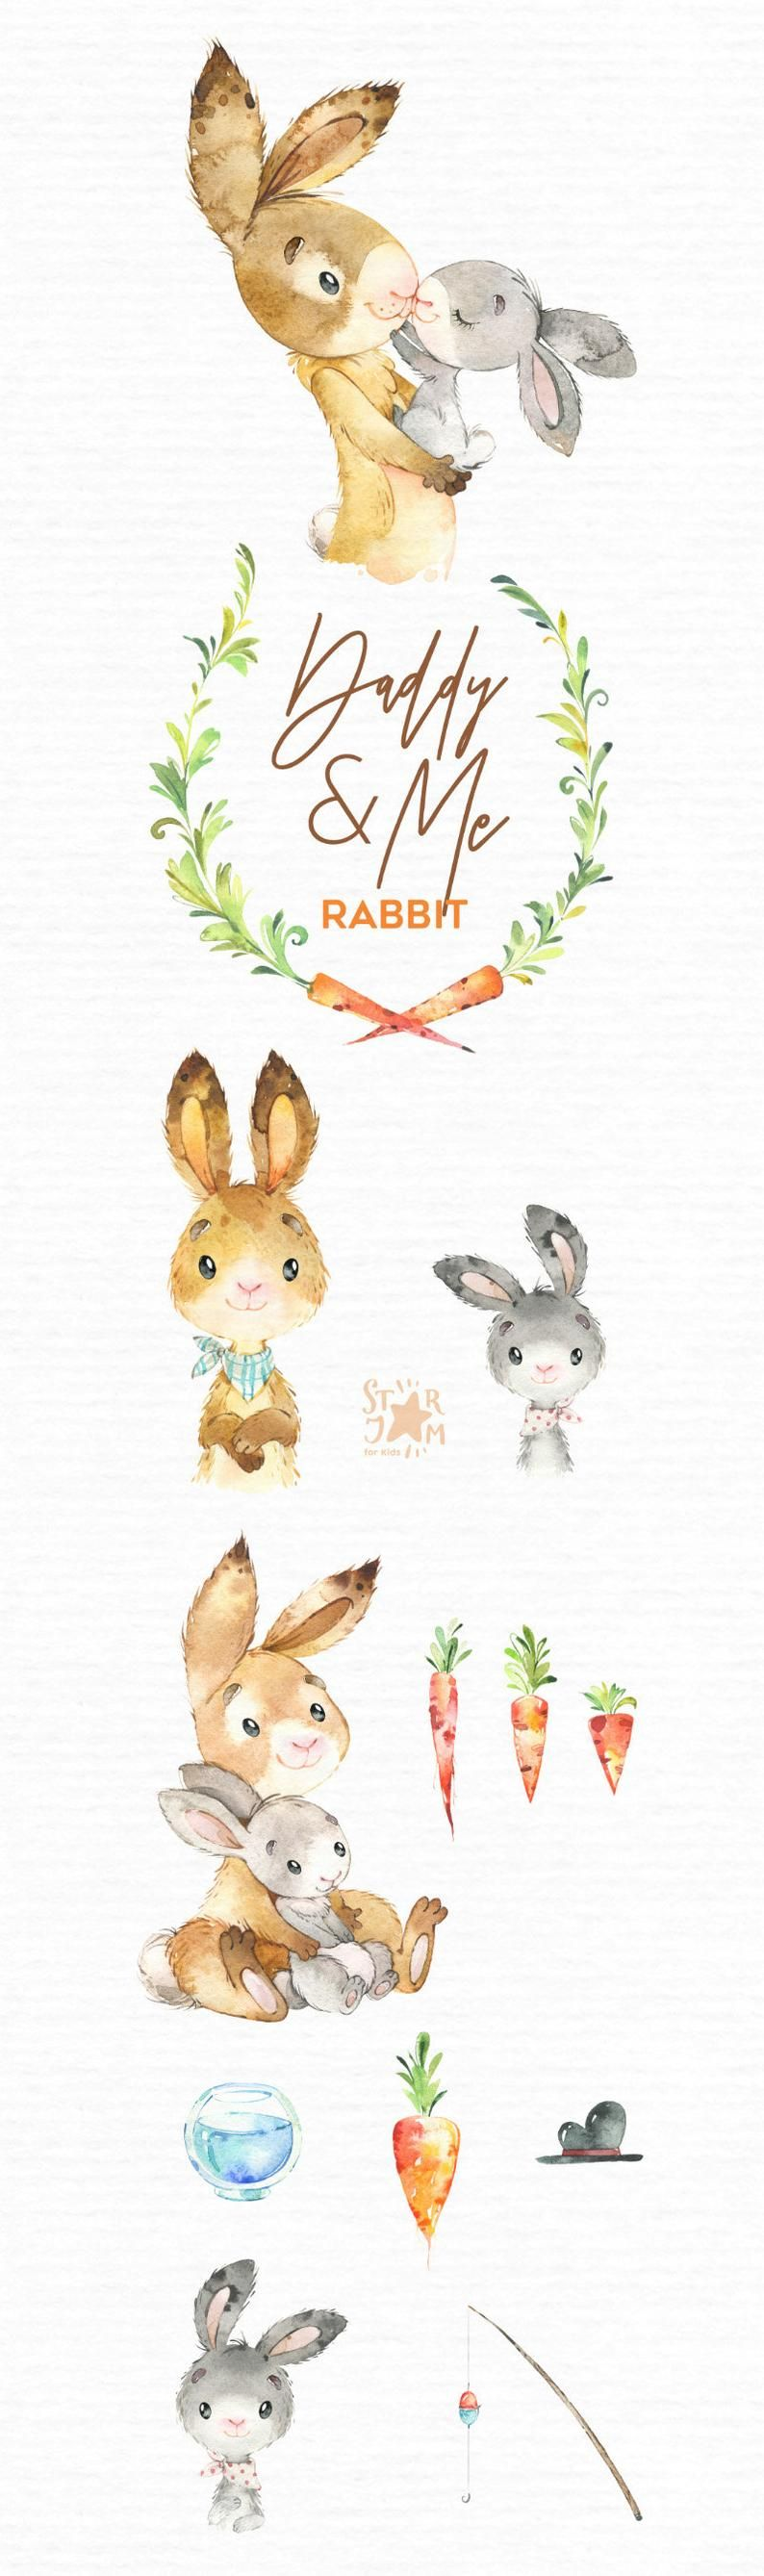 Daddy Me Rabbit Watercolor Animals Clipart Father Hugs Family Hare Bunny Father S Day Floral Carrot Wreath Baby Shower Nursery In 2021 Watercolor Animals Animal Clipart Cartoon Clip Art